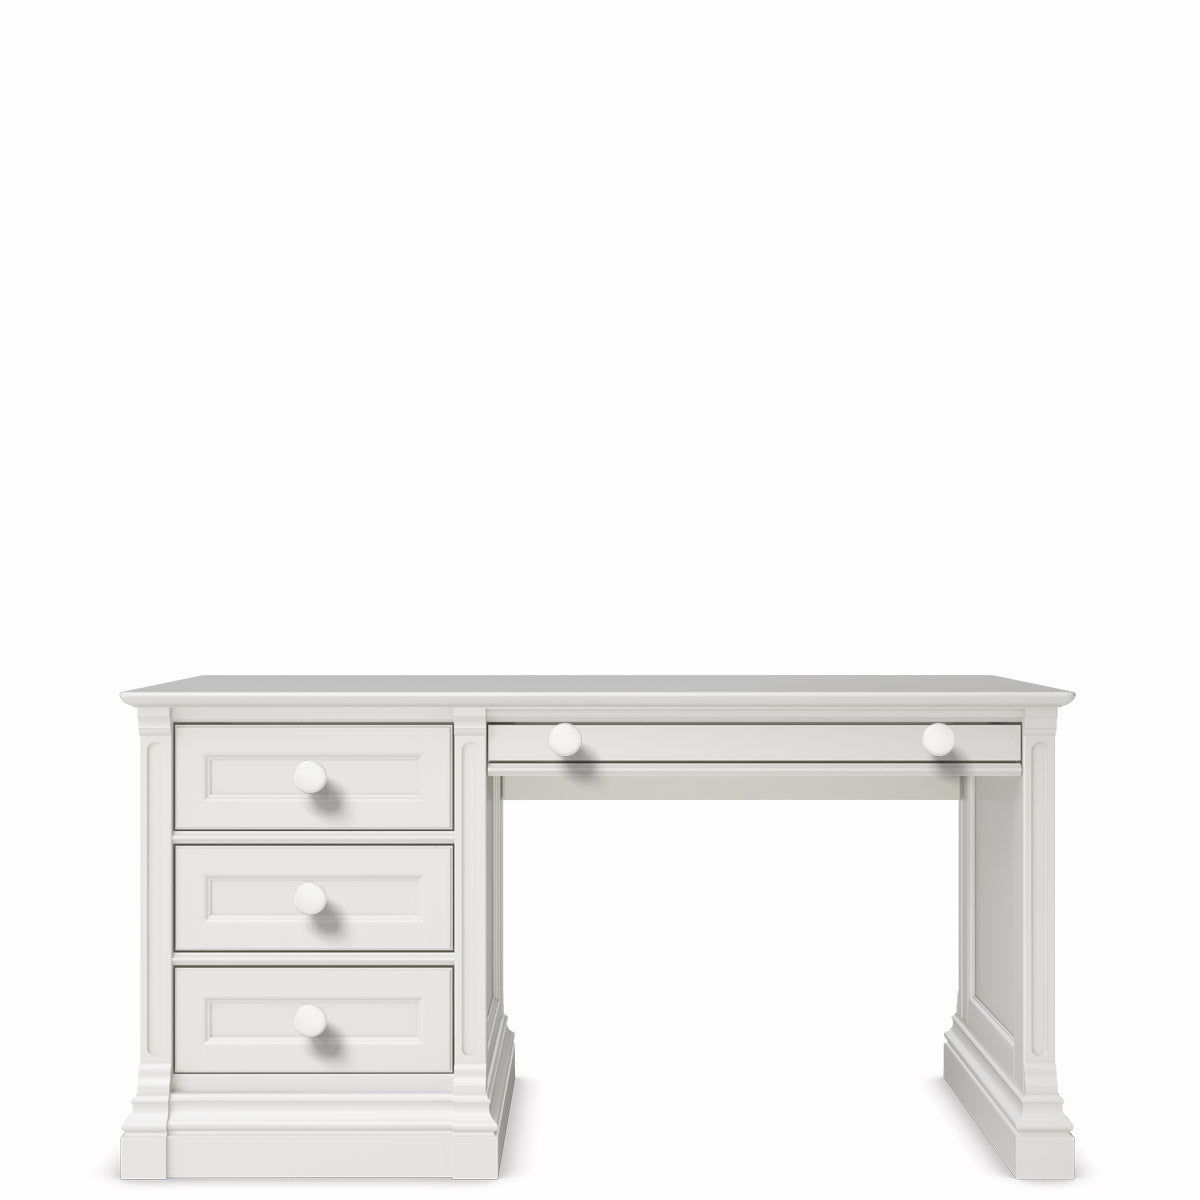 Romina Imperio Desk